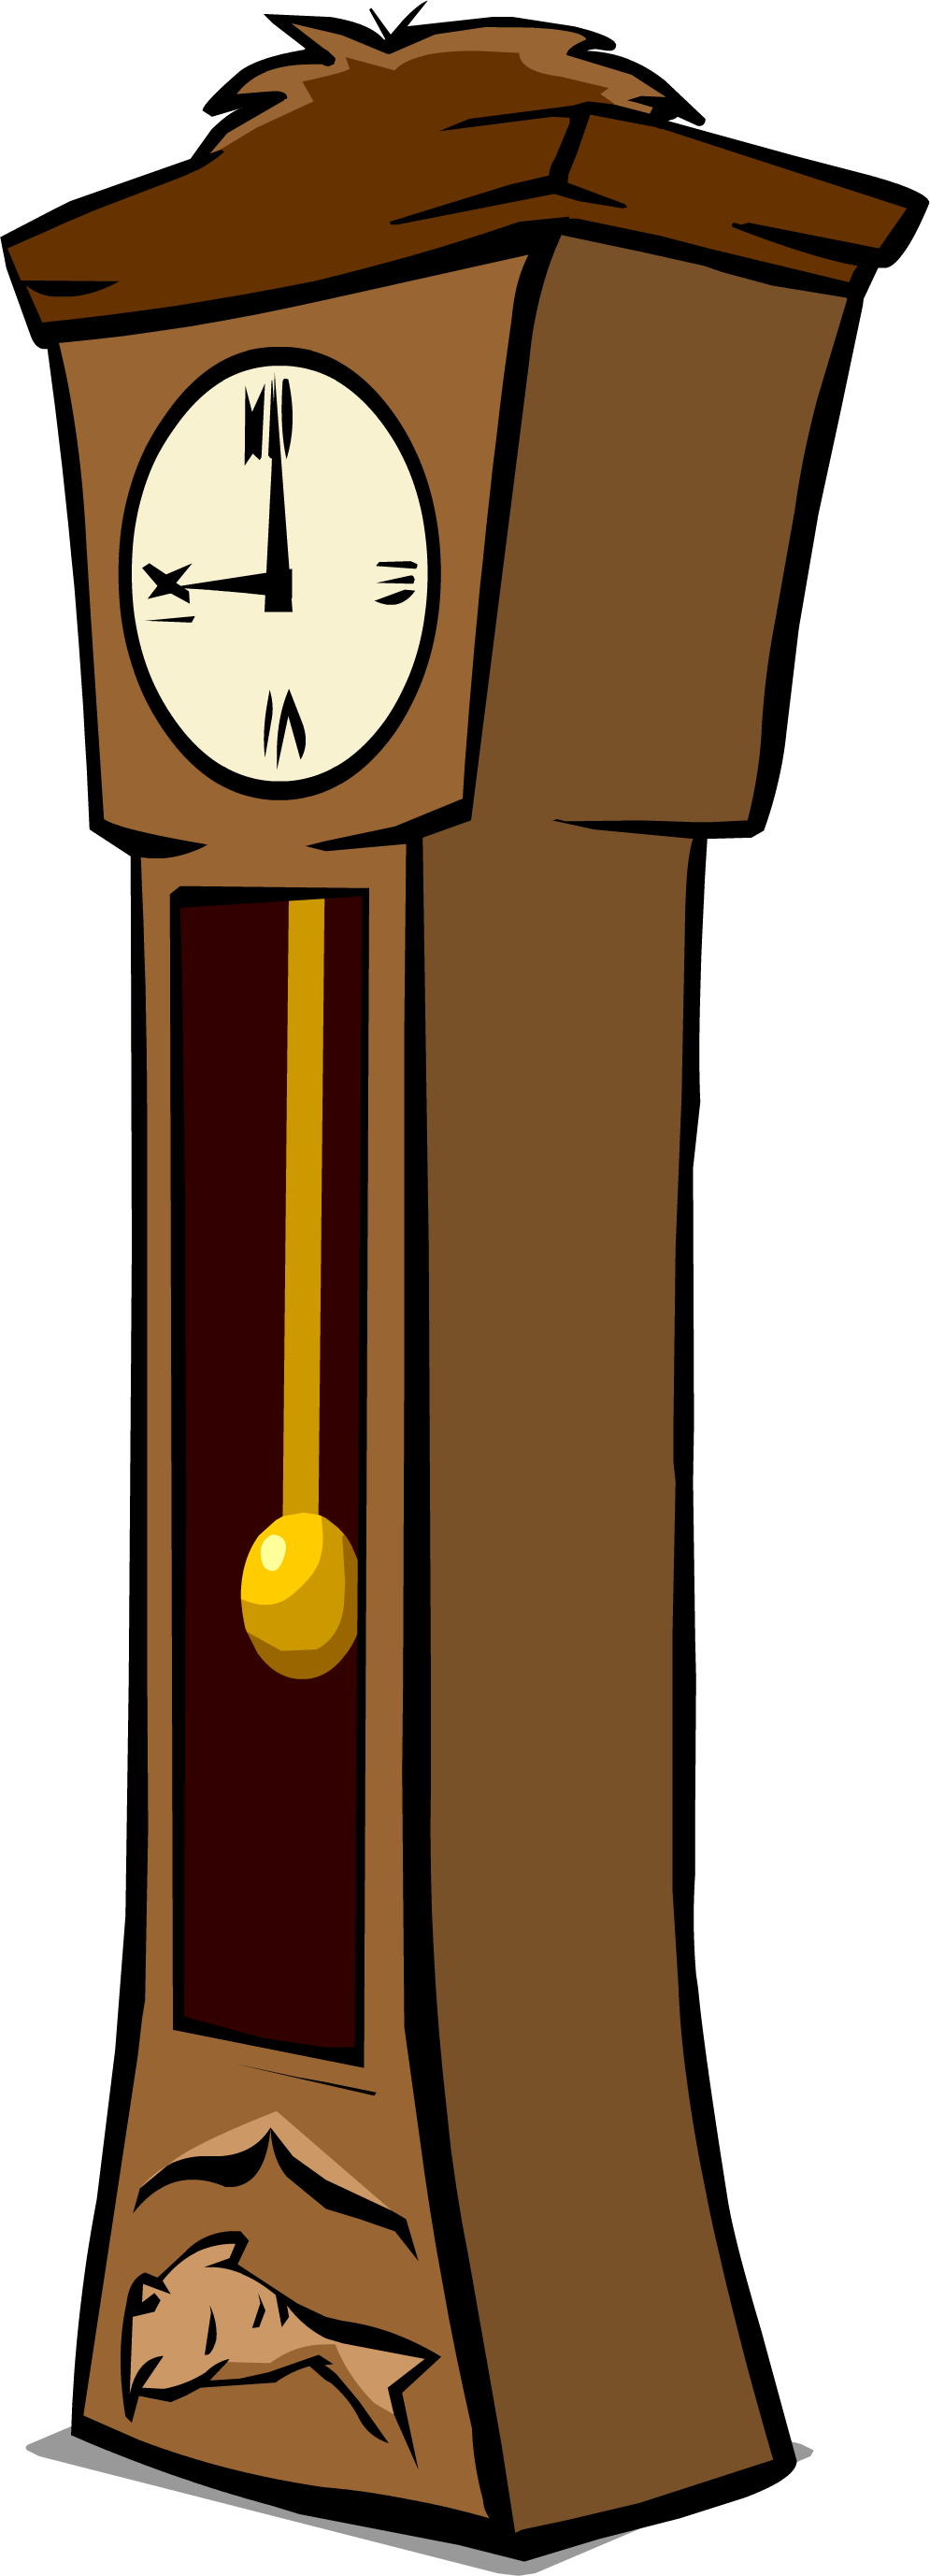 grandfather clock clipart at getdrawings com free for personal use rh getdrawings com old grandfather clock clipart grandfather clock clip art public domain